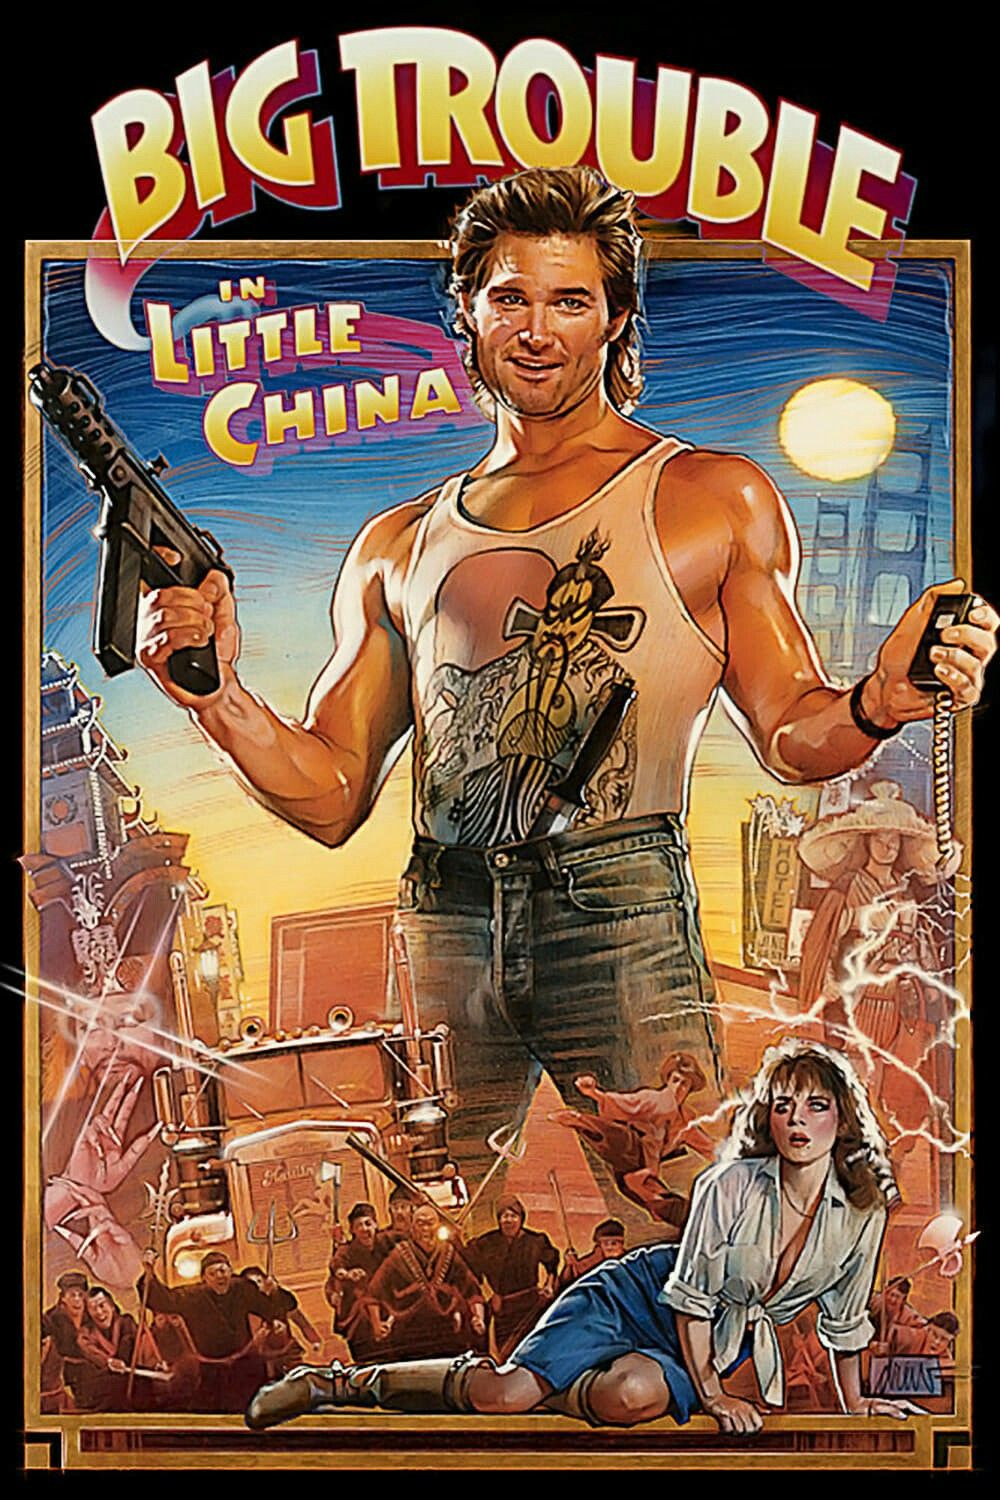 Big Trouble In Little China Movie Poster A Bigtroubleinlittlechina Fantastic Movie Posters Scifi Movie Posters Best Movie Posters Movie Posters Classic Movies